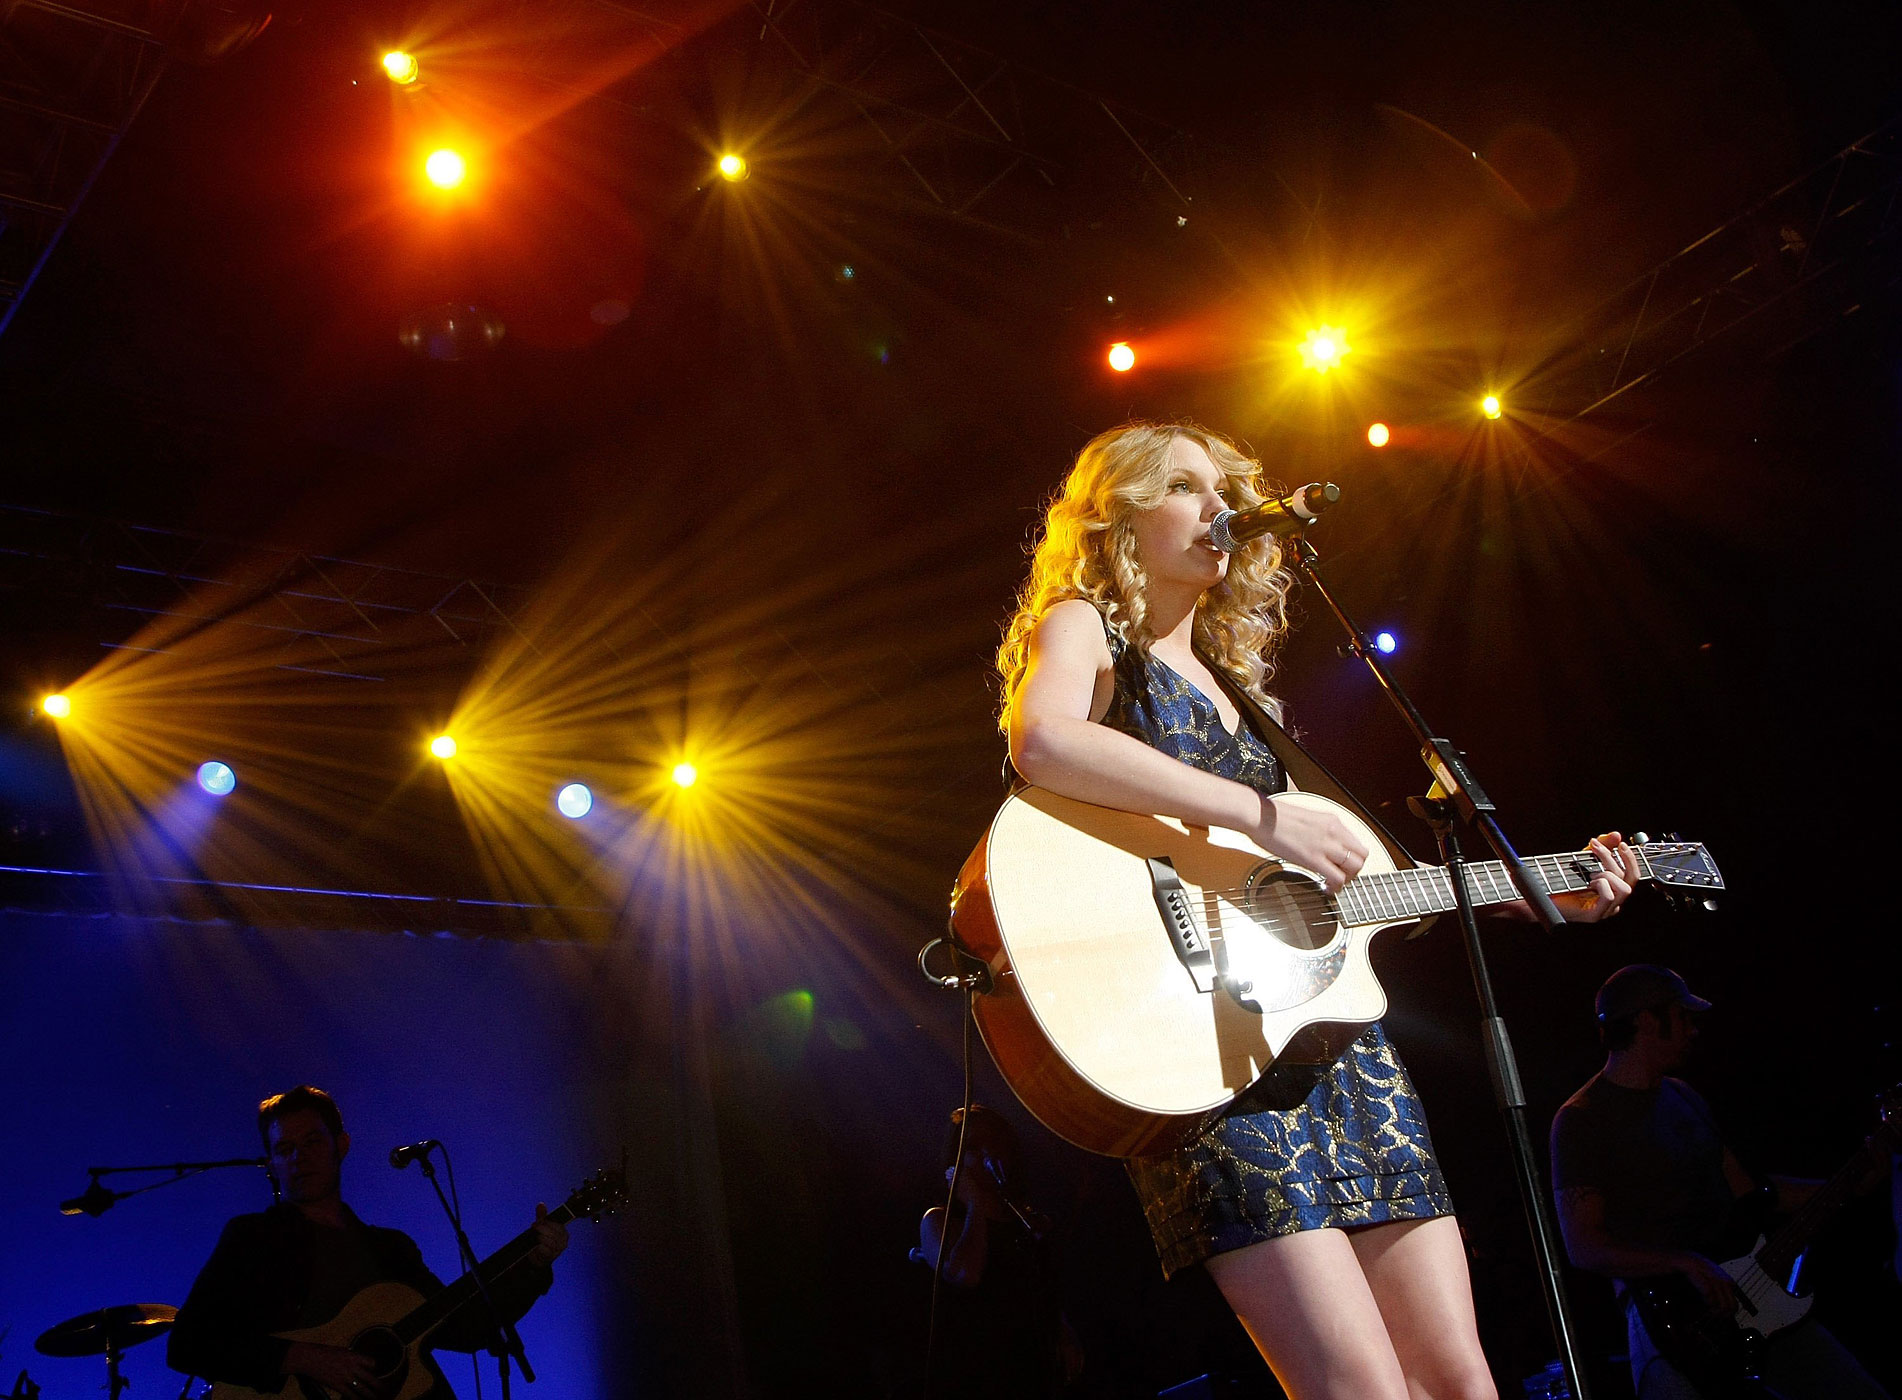 Taylor Swift performs during the 44th annual Academy of Country Music Awards All-Star Jam at the MGM Grand Hotel/Casino in Las Vegas, Nevada in 2009.